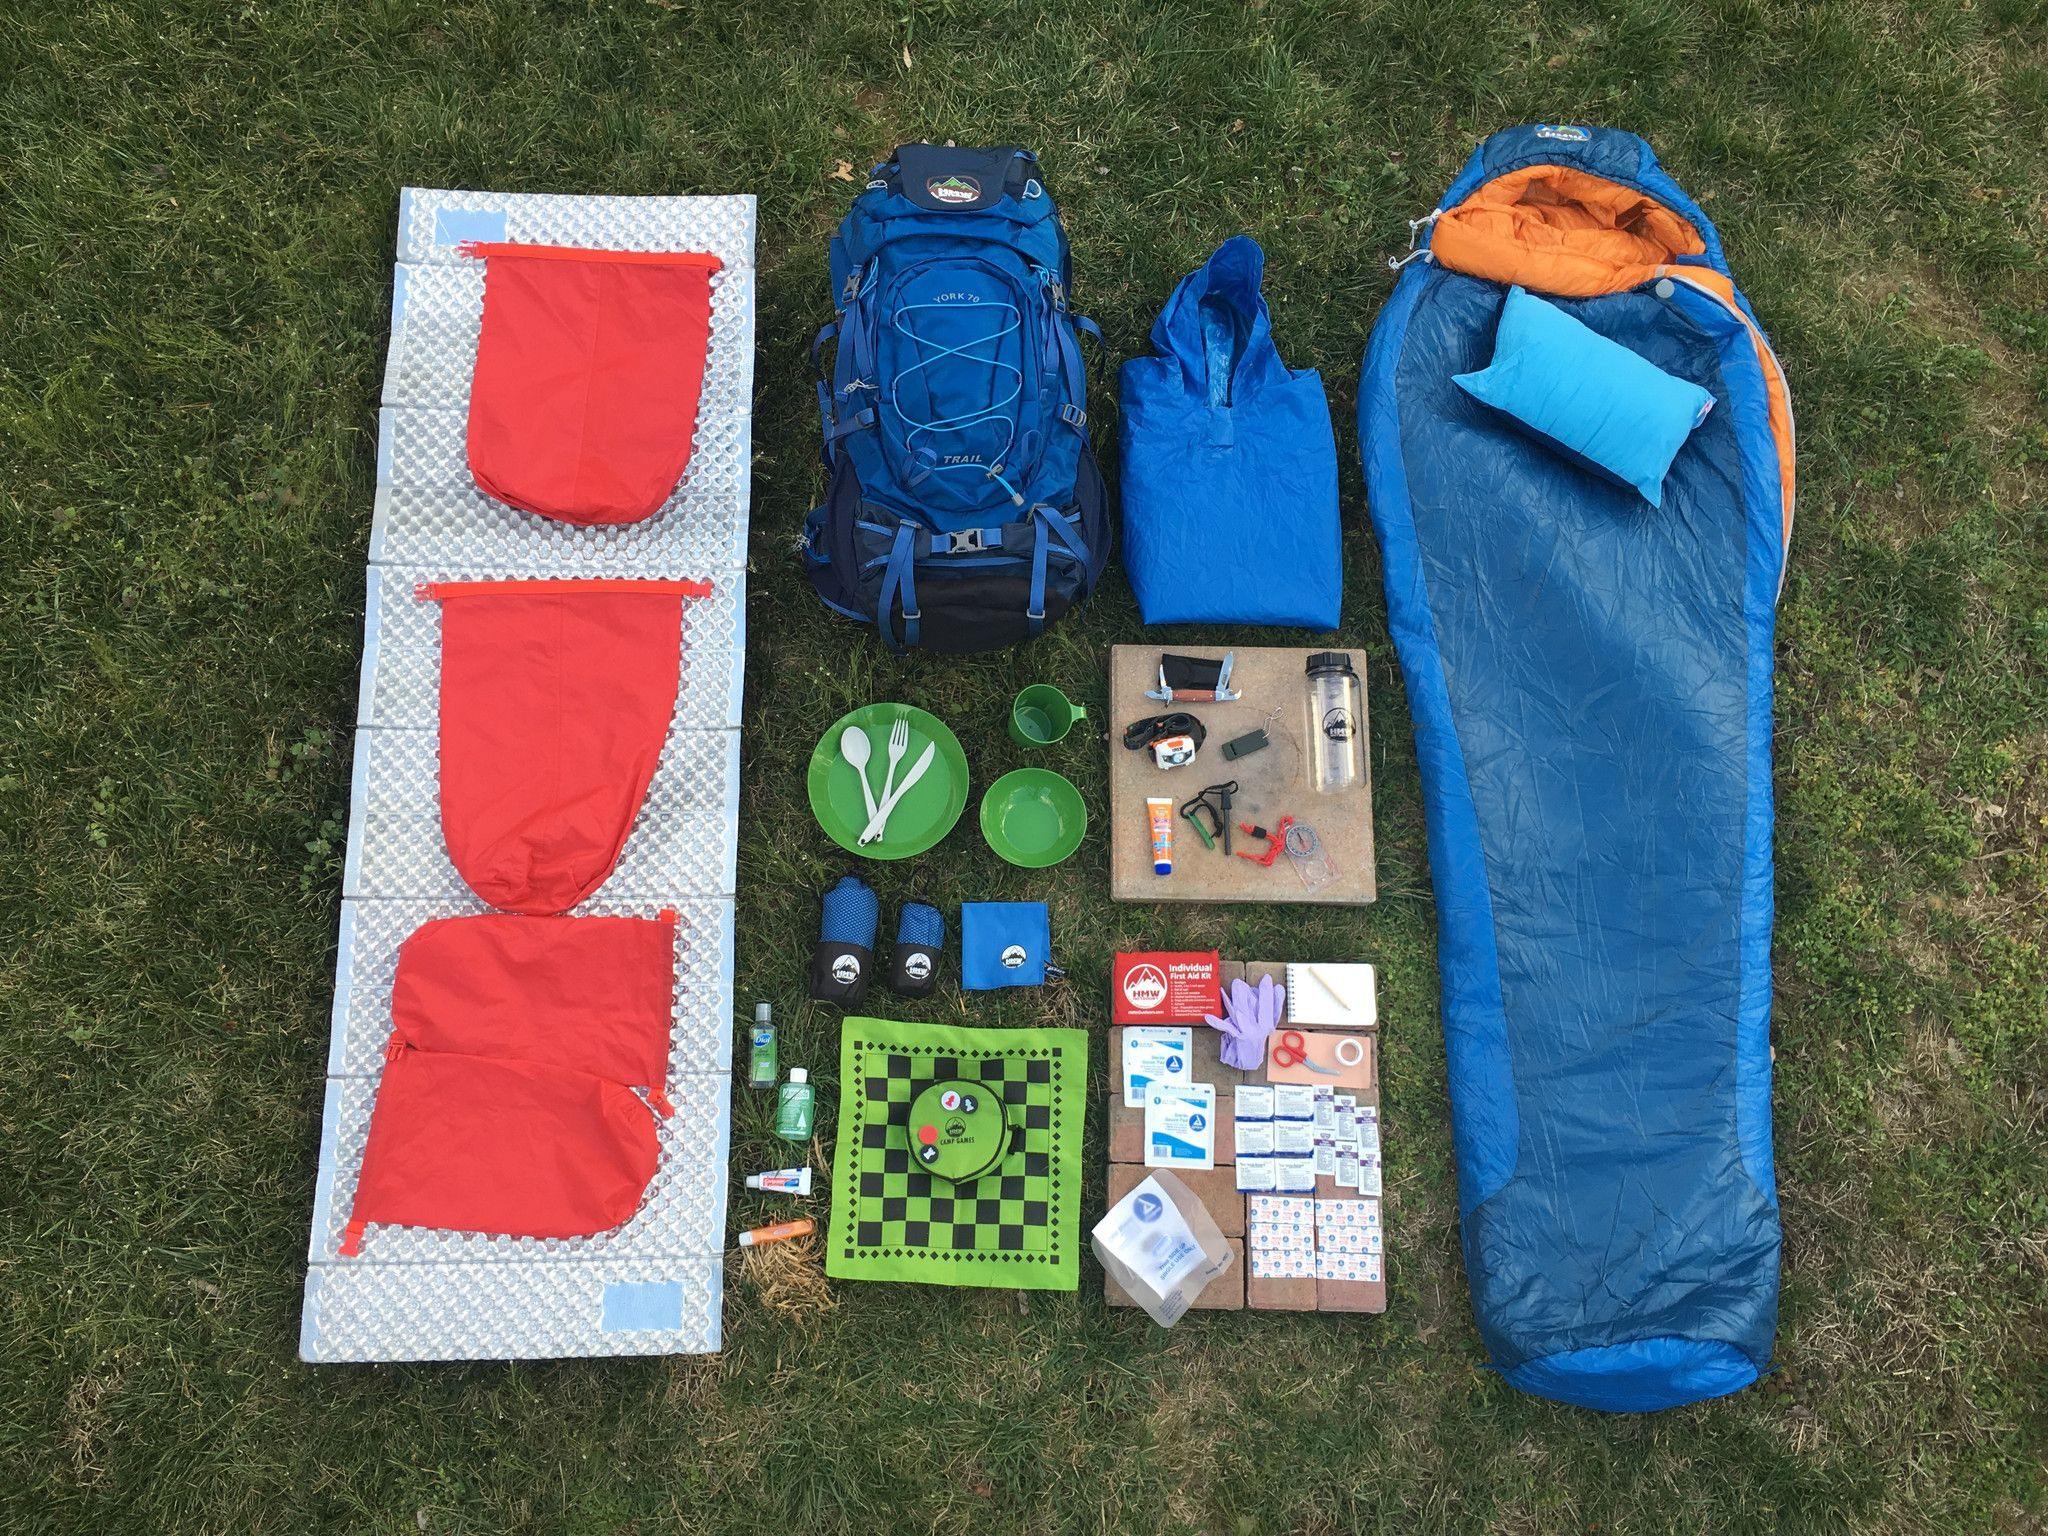 Youth Adventure Kit YAK 1 0 Survival Gear